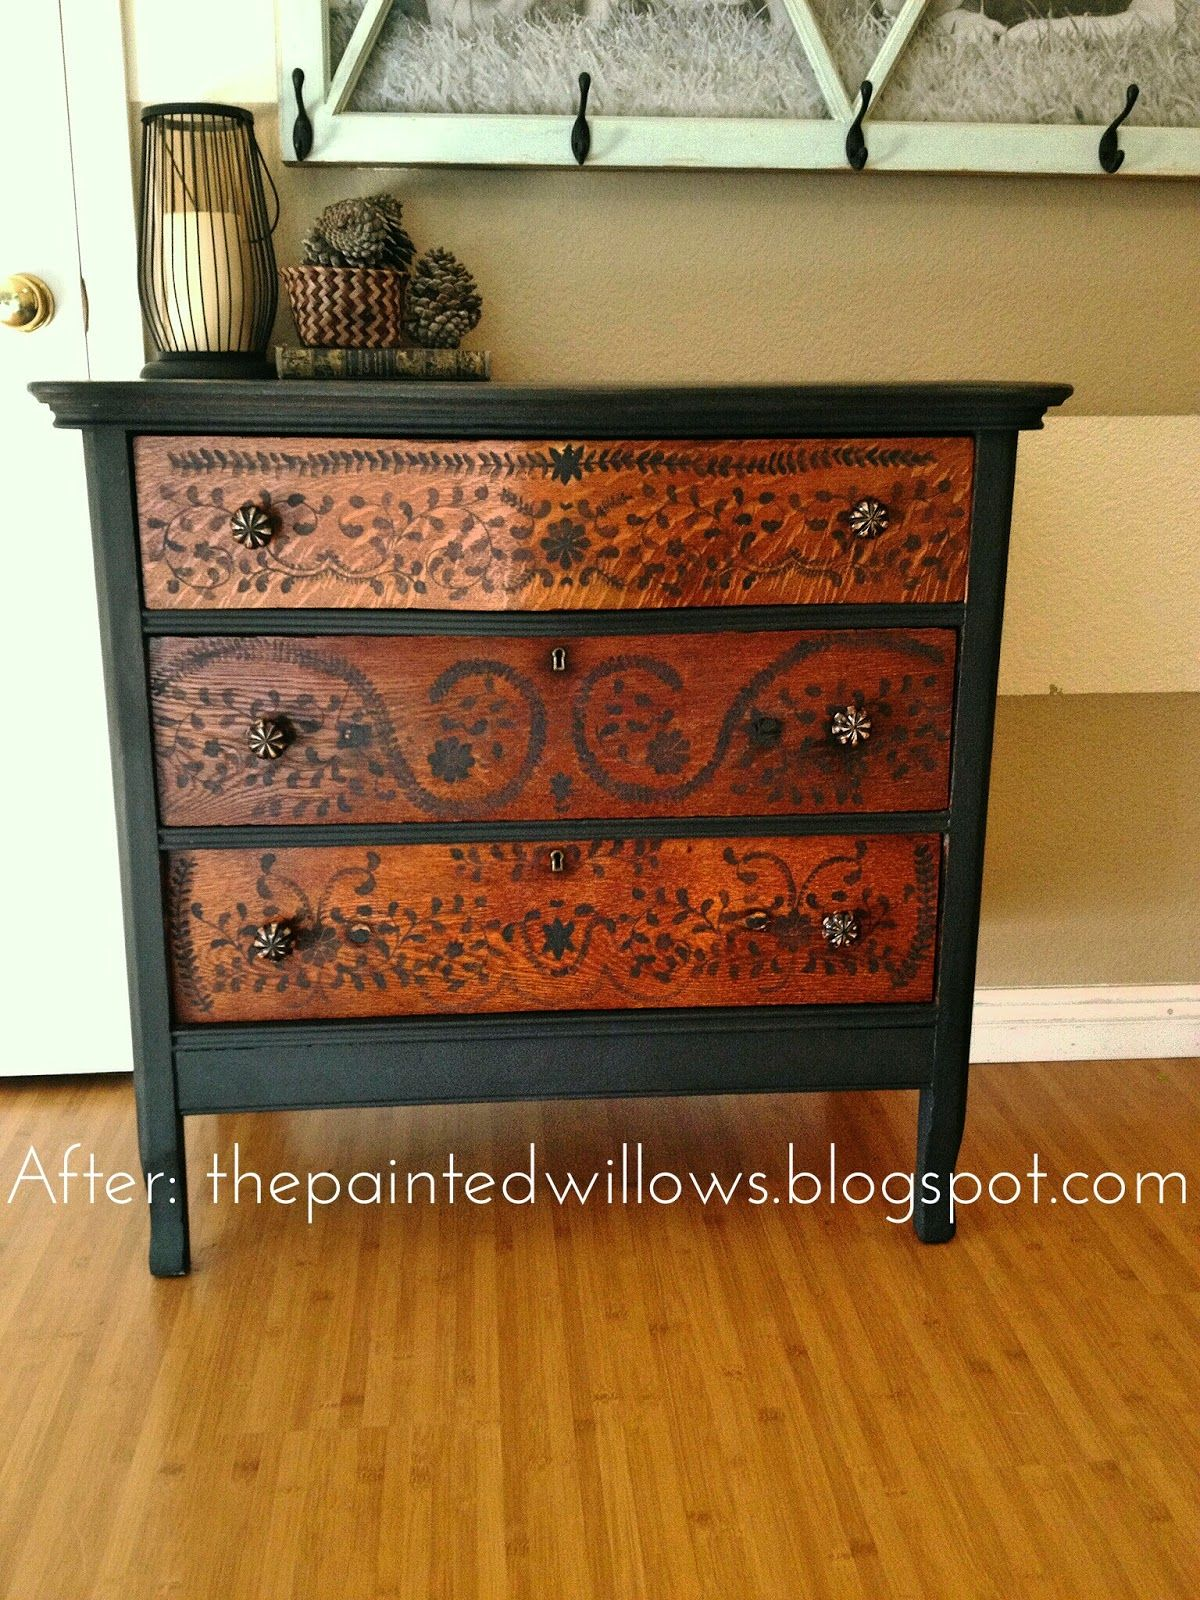 Furniture gallery tons of before and after diy furniture redo ideas including this miss mustard seed inspired antique dresser painted black